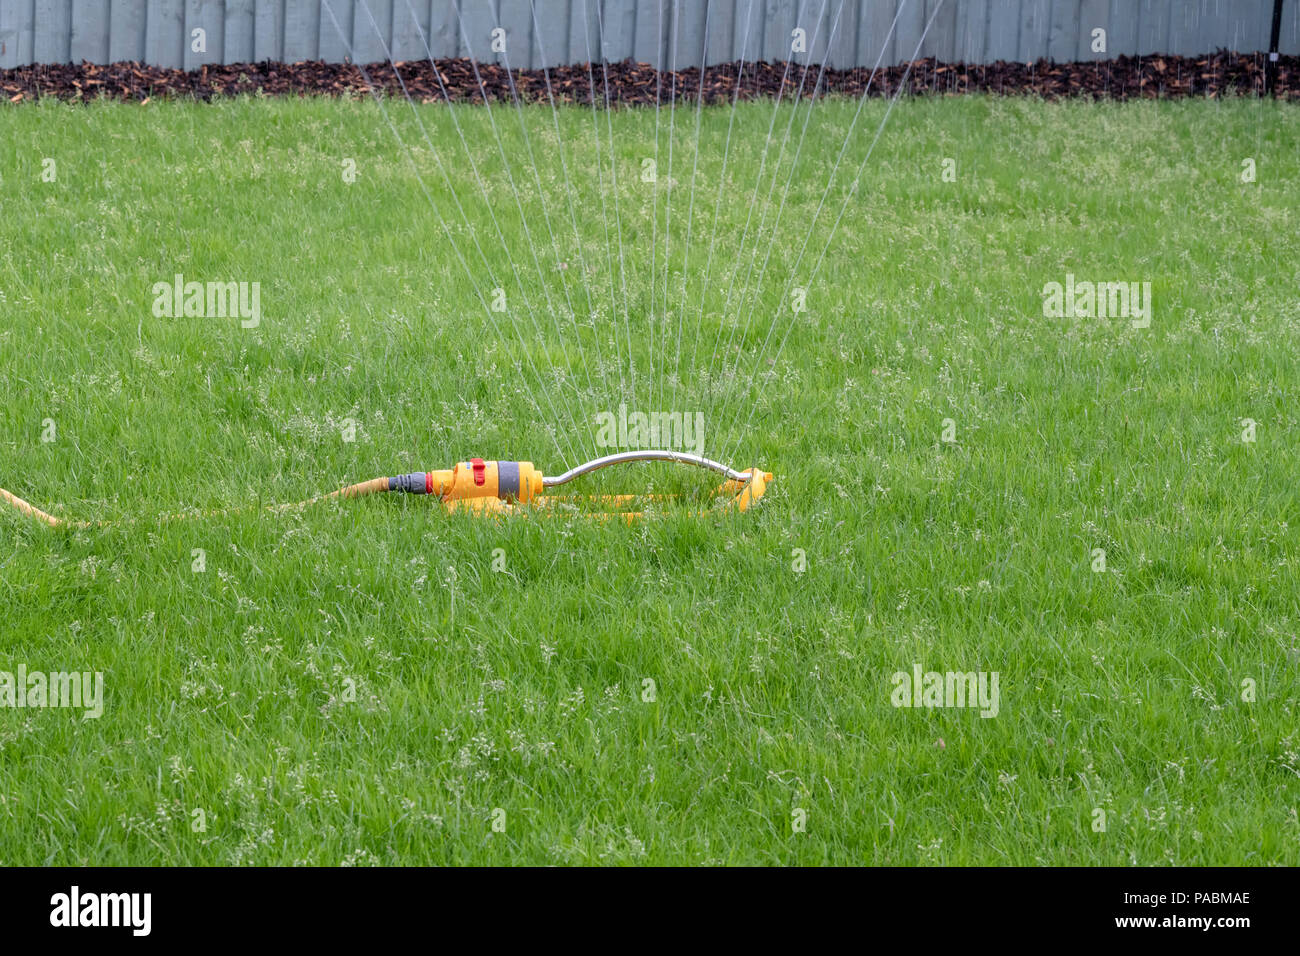 Sprinkler attached to a yellow hose being used to water a grass lawn - Stock Image